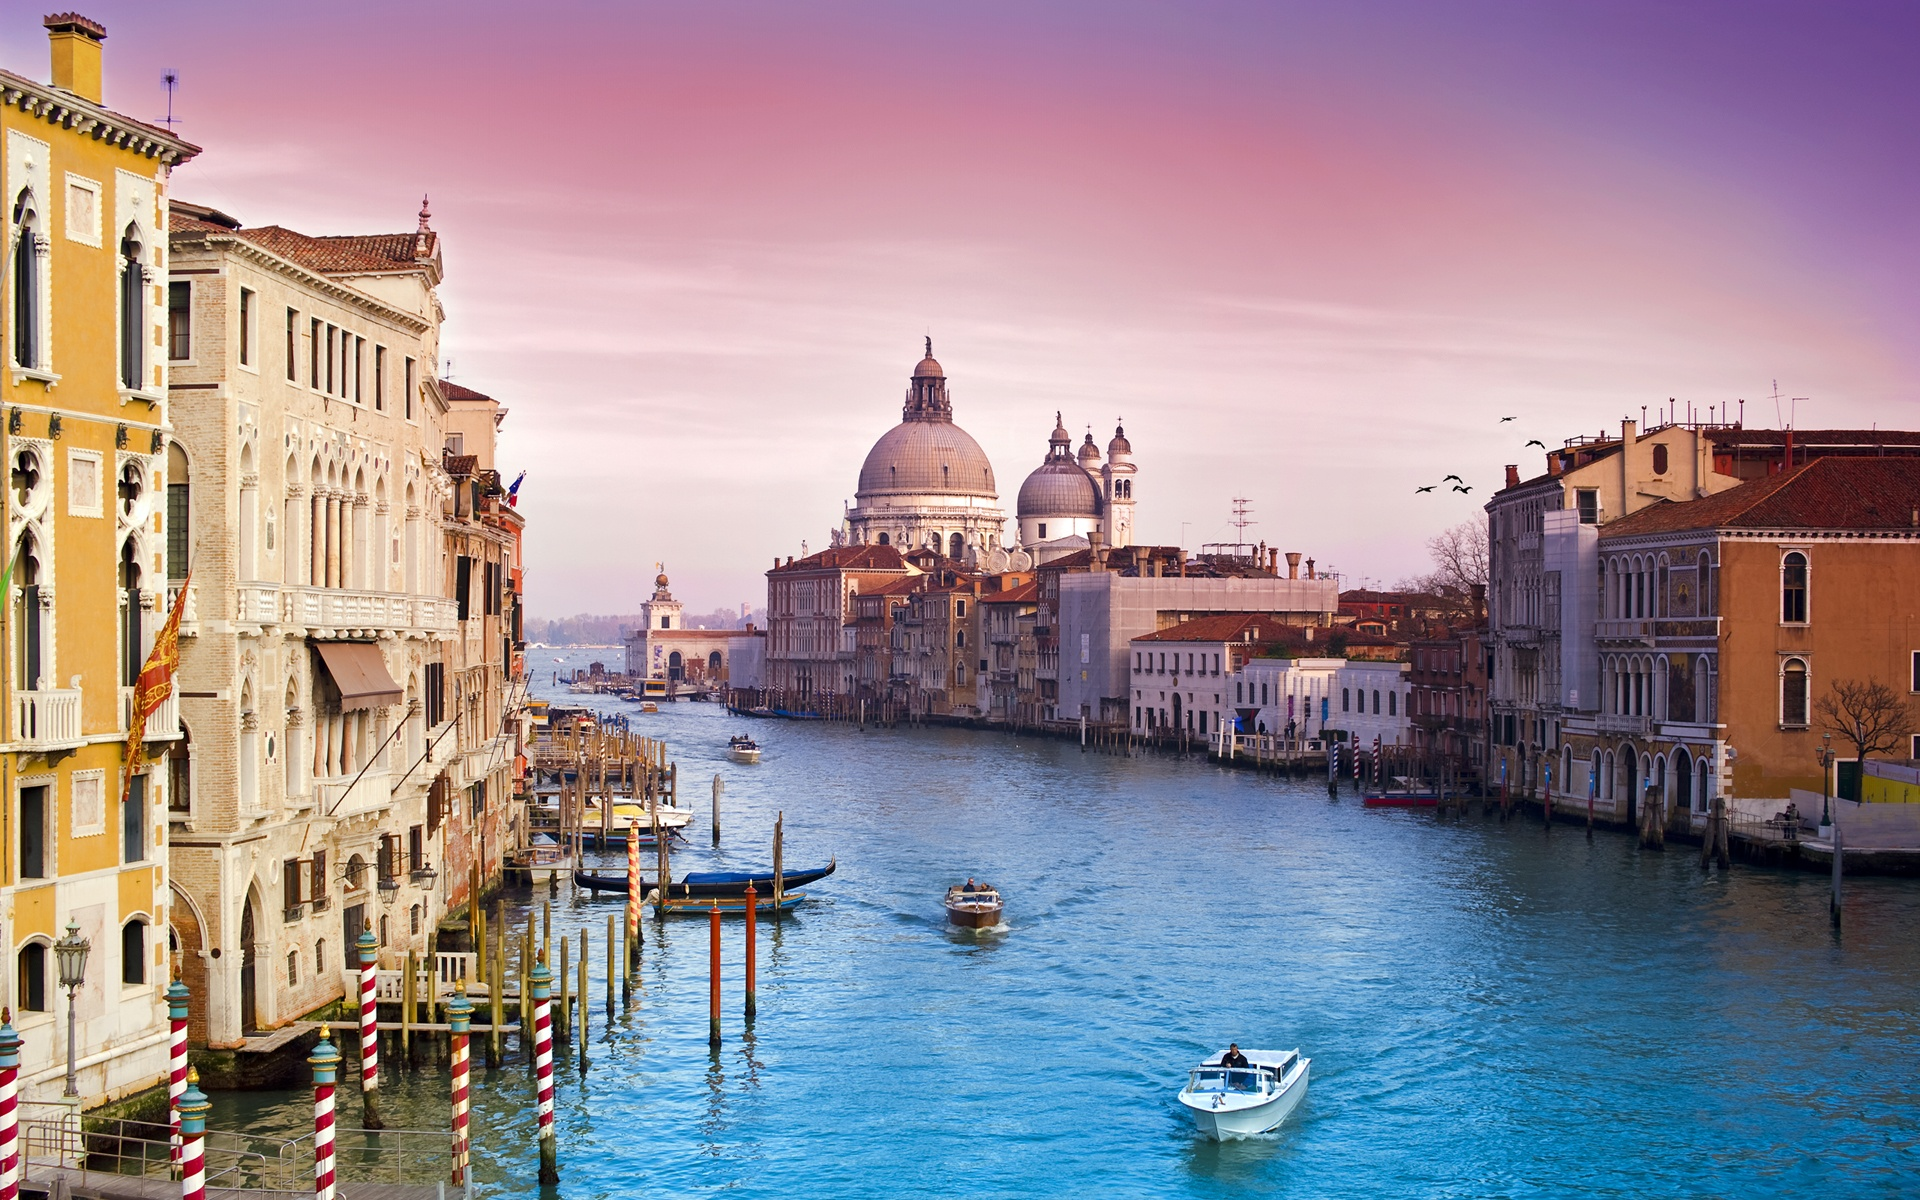 Beauty of Venice wallpaper